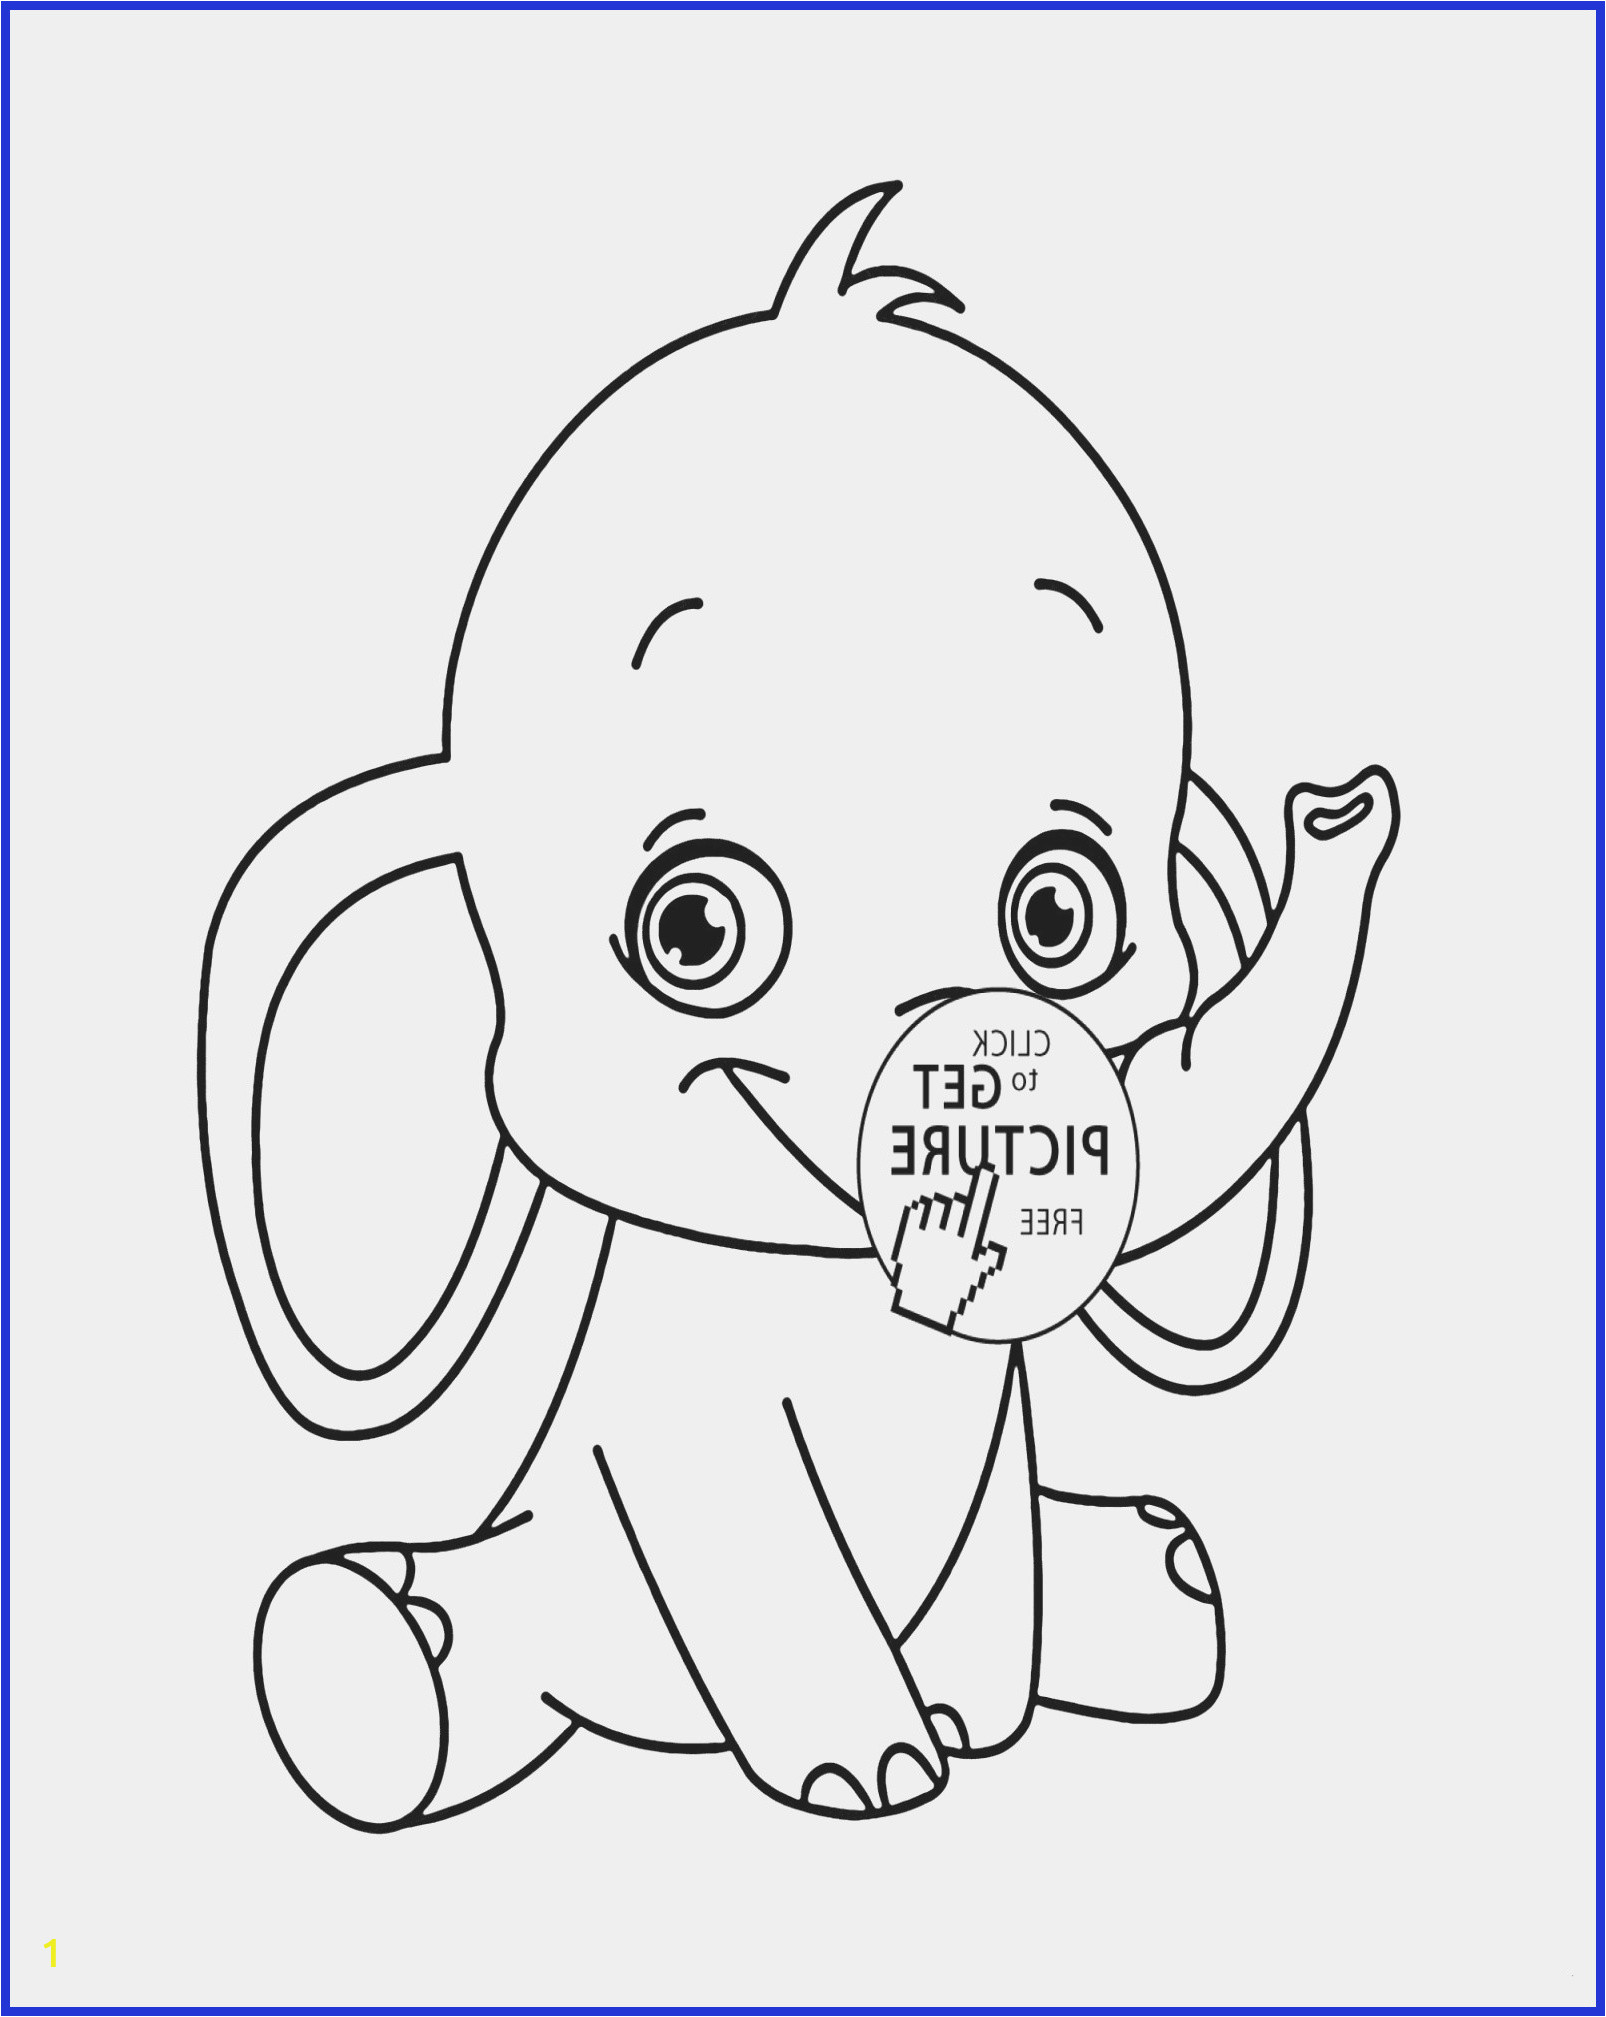 coloring page of animals for adults elegant images 16 inspirational coloring pages cute animals of coloring page of animals for adults